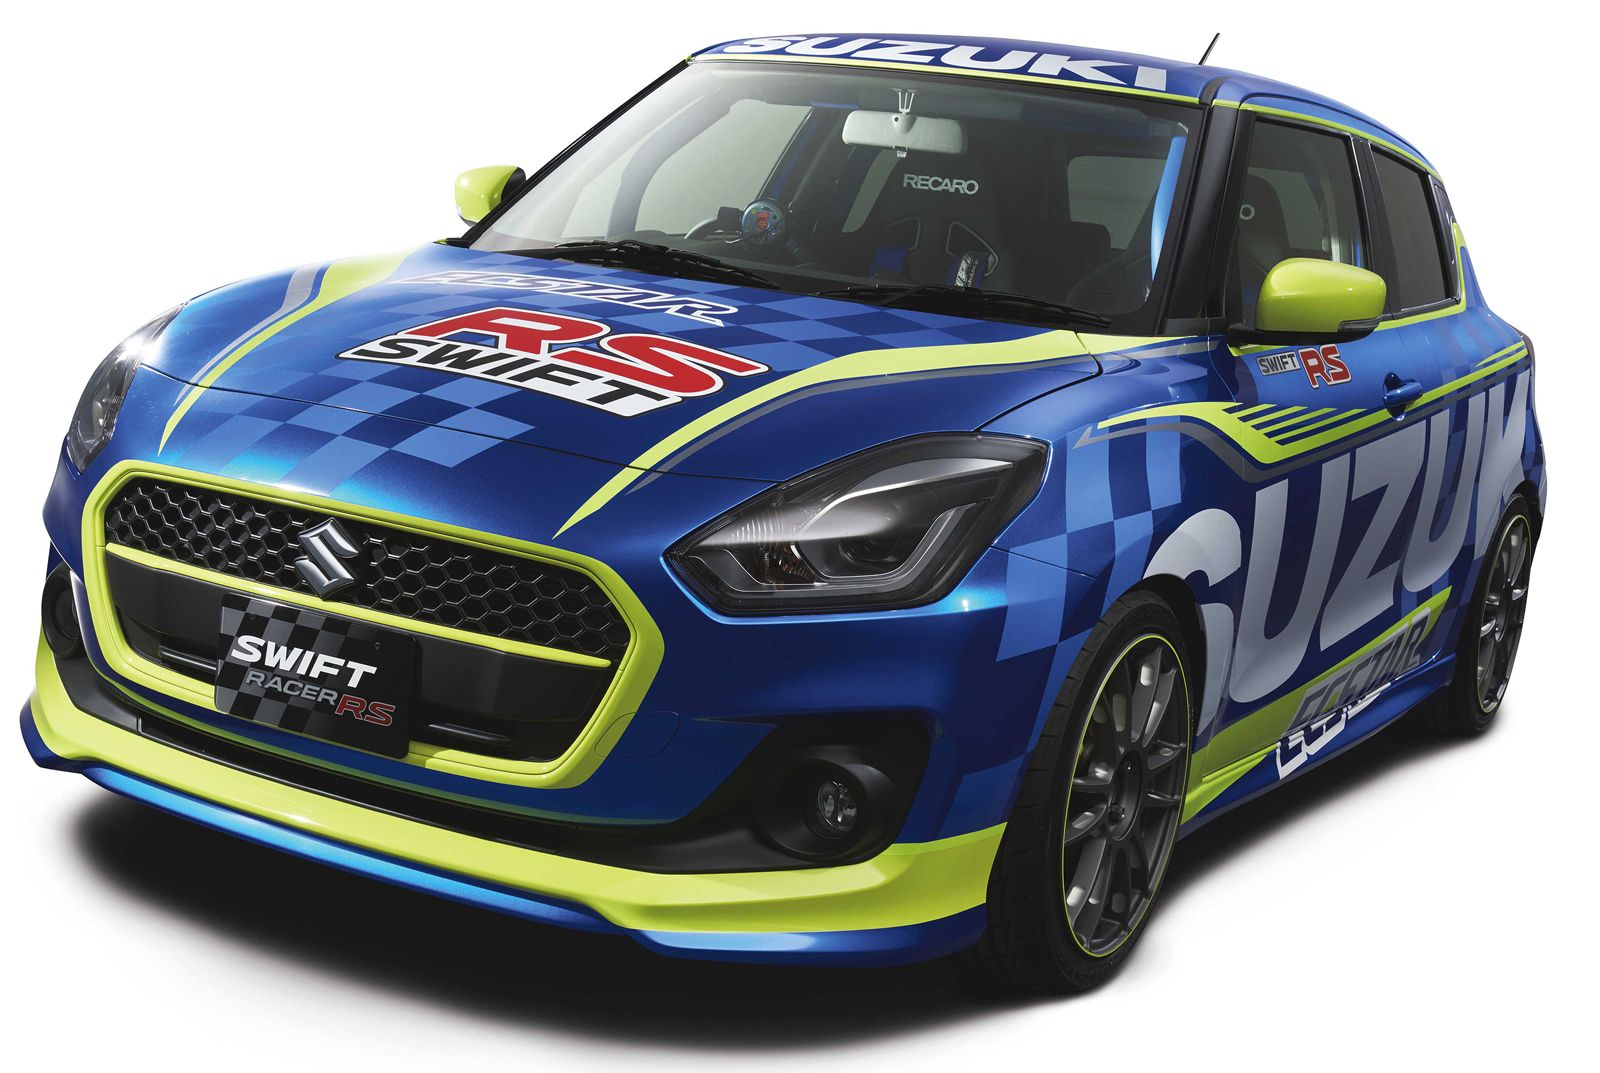 The New Suzuki Swift Looks Like It Would Make A Cool Racer